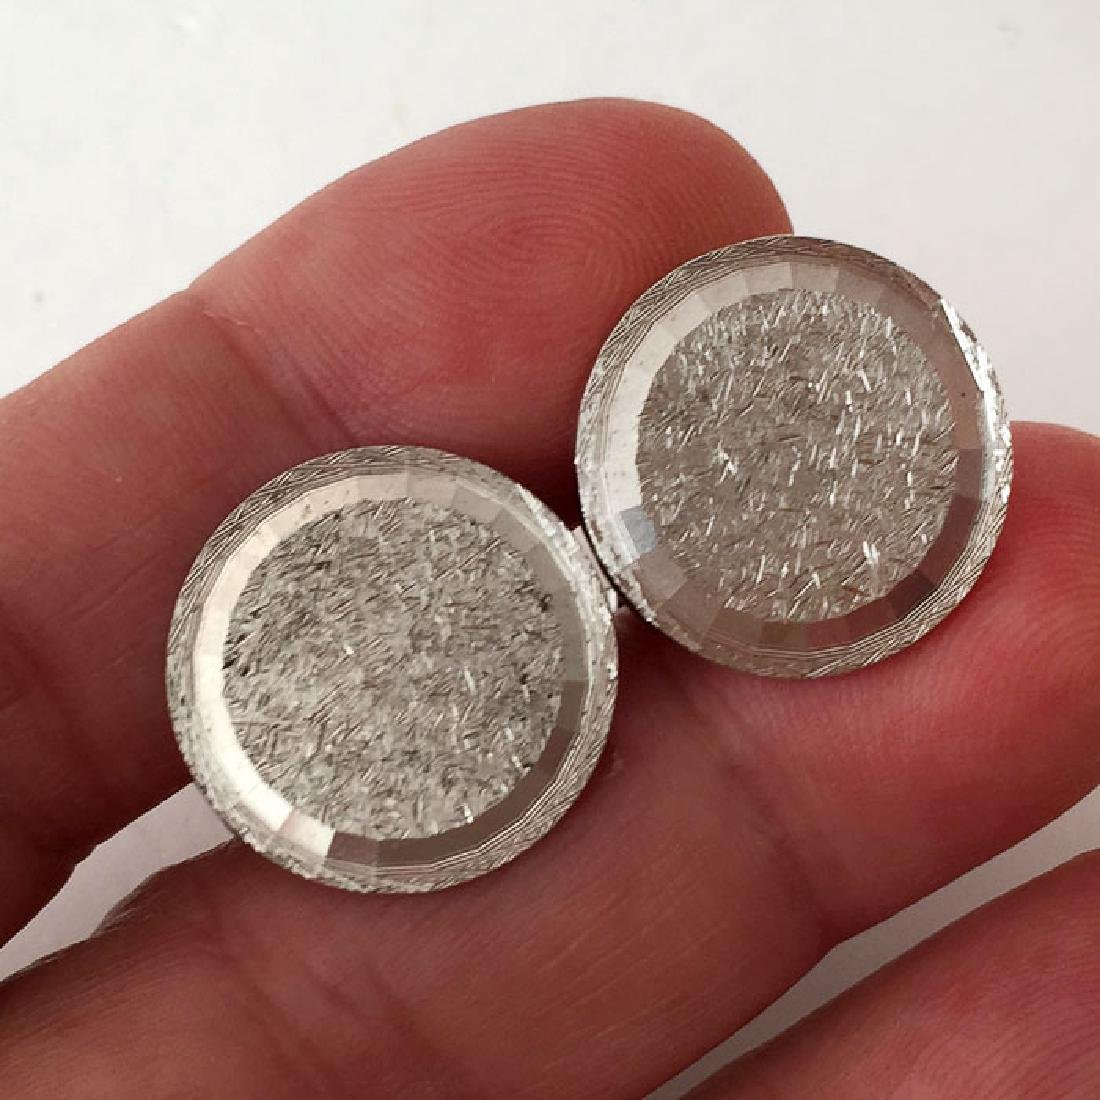 Sterling silver textured and shiny finish round